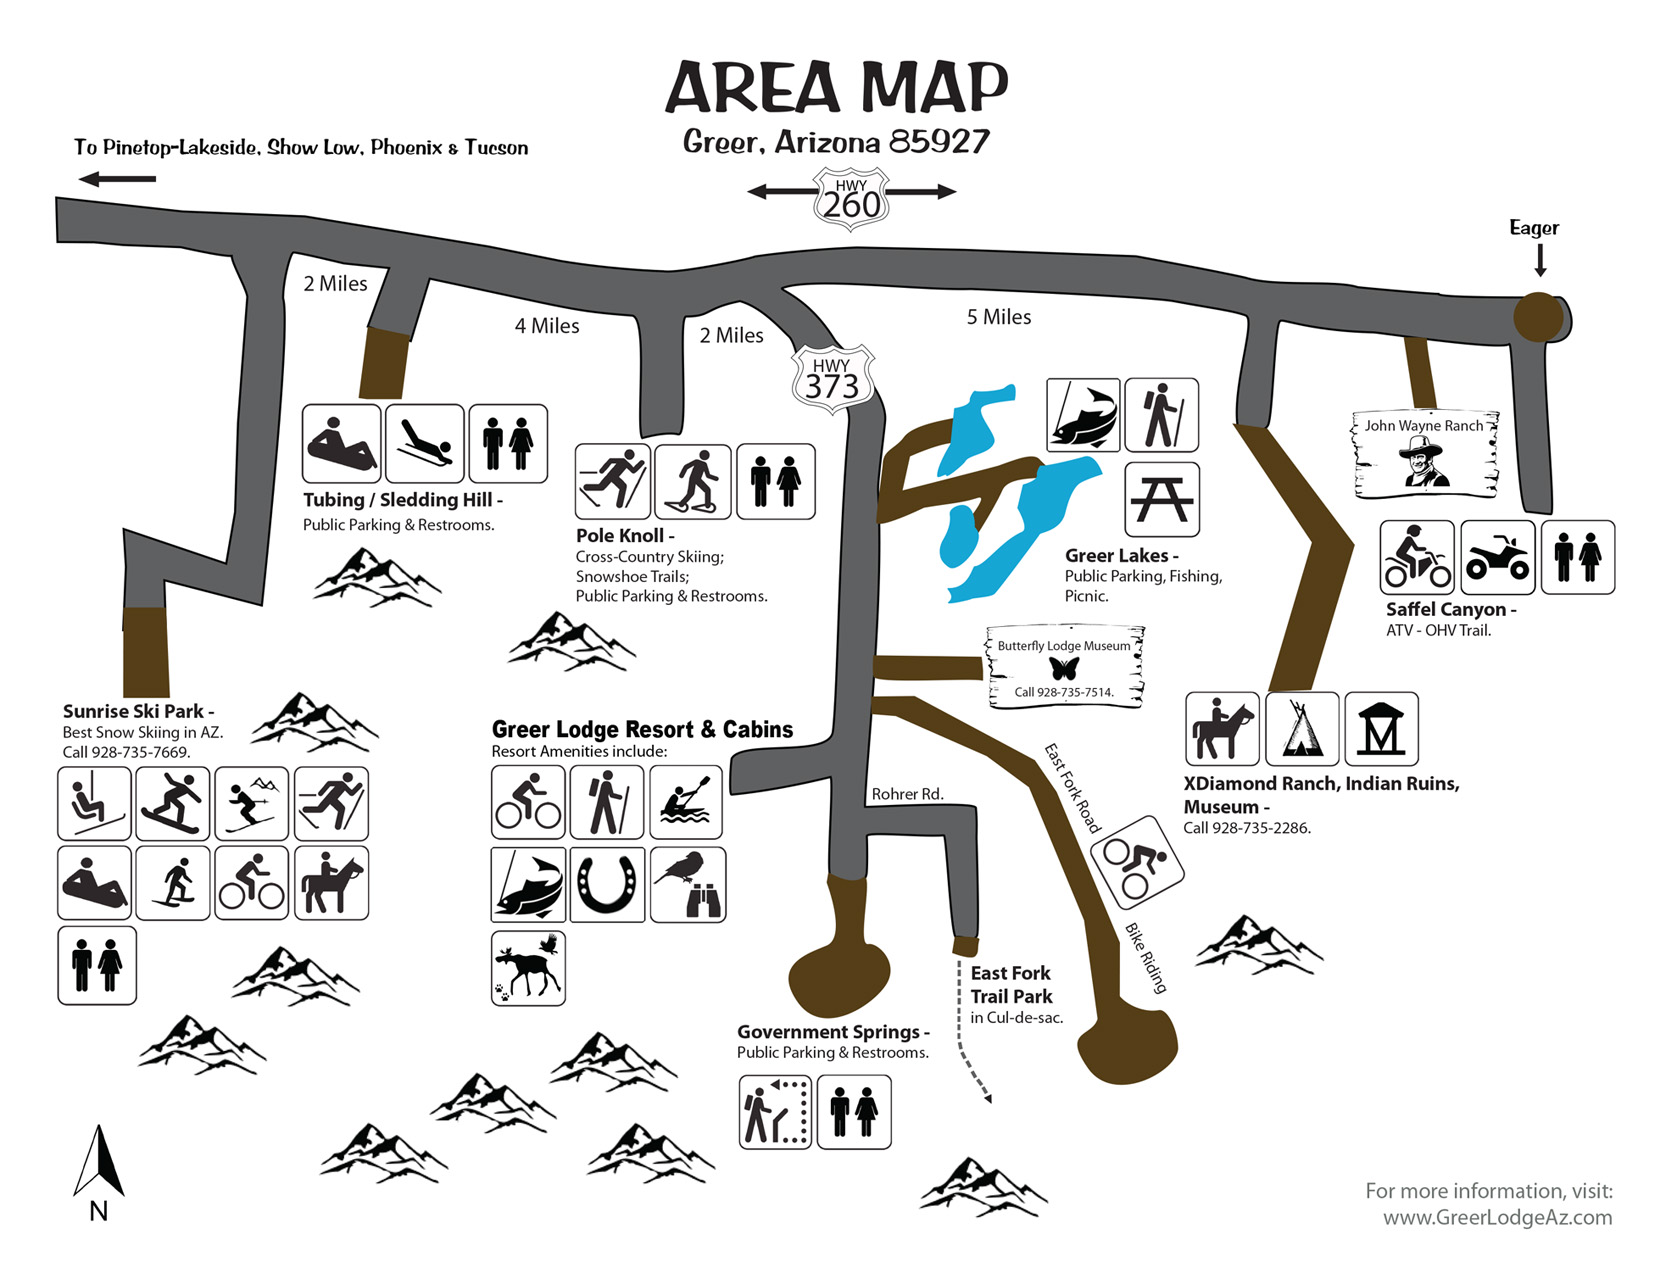 Greer Arizona Area Map